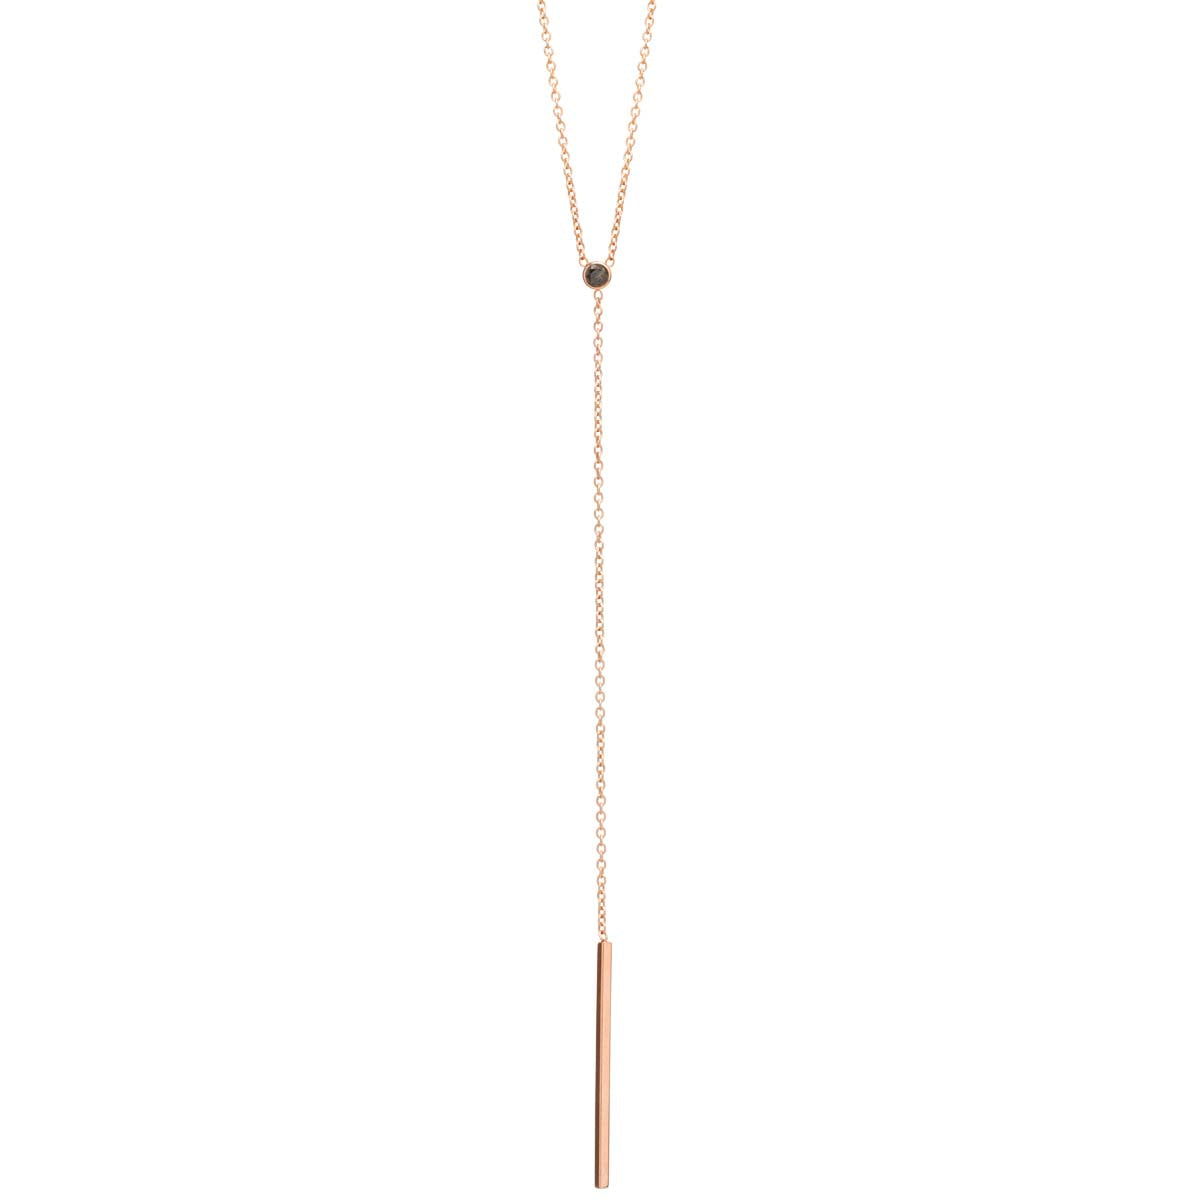 Zoë Chicco 14kt Yellow Gold Black Diamond Bar Lariat Necklace